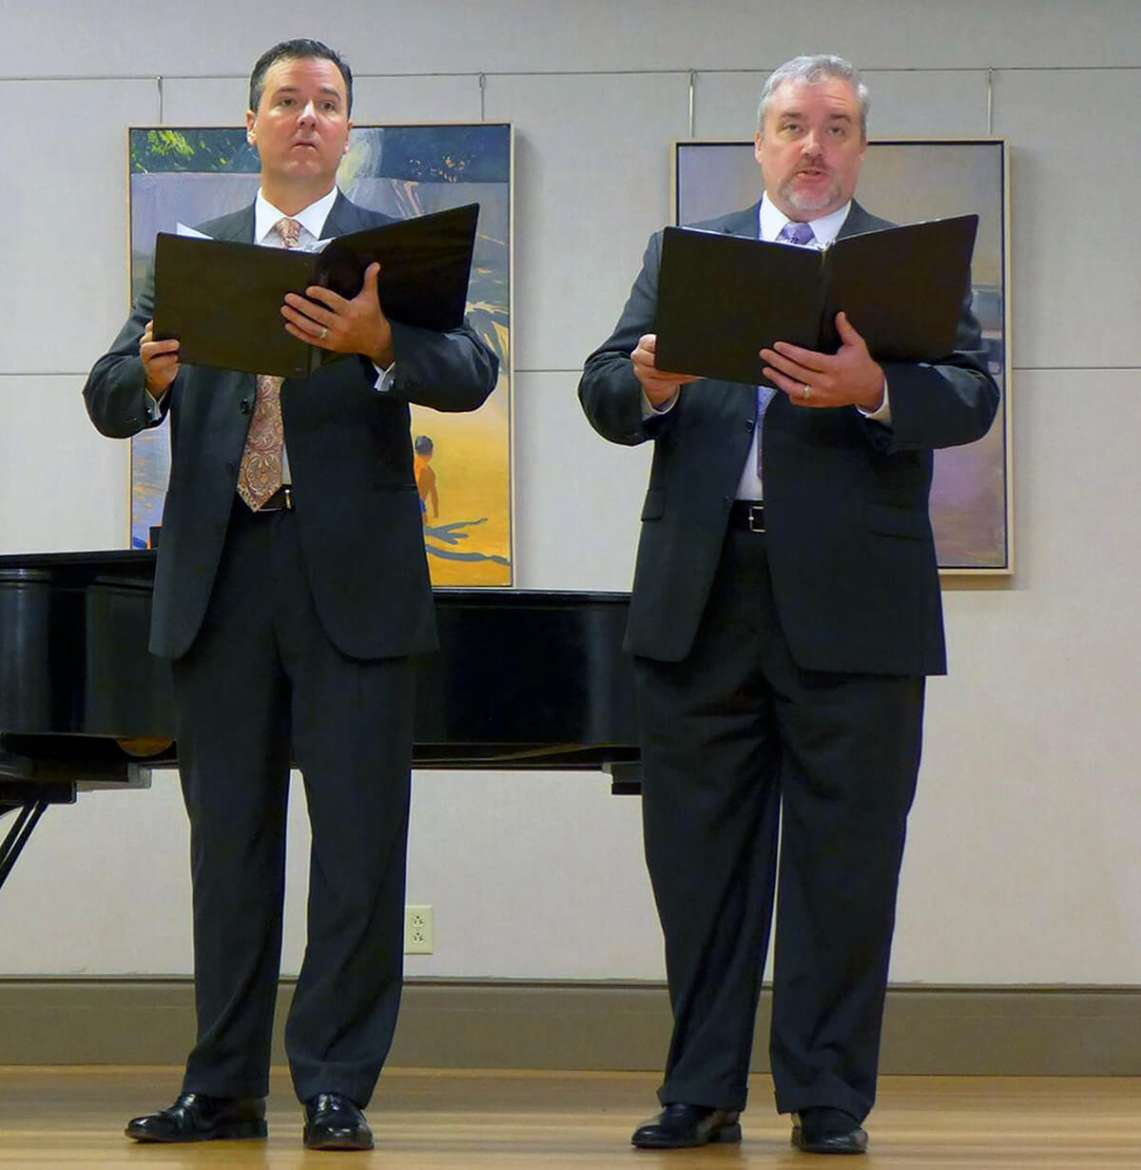 Dr. Robert Tudor, associate professor of music and chair of the Department of Music, and Dr. Bobb Robinson, adjunct music faculty